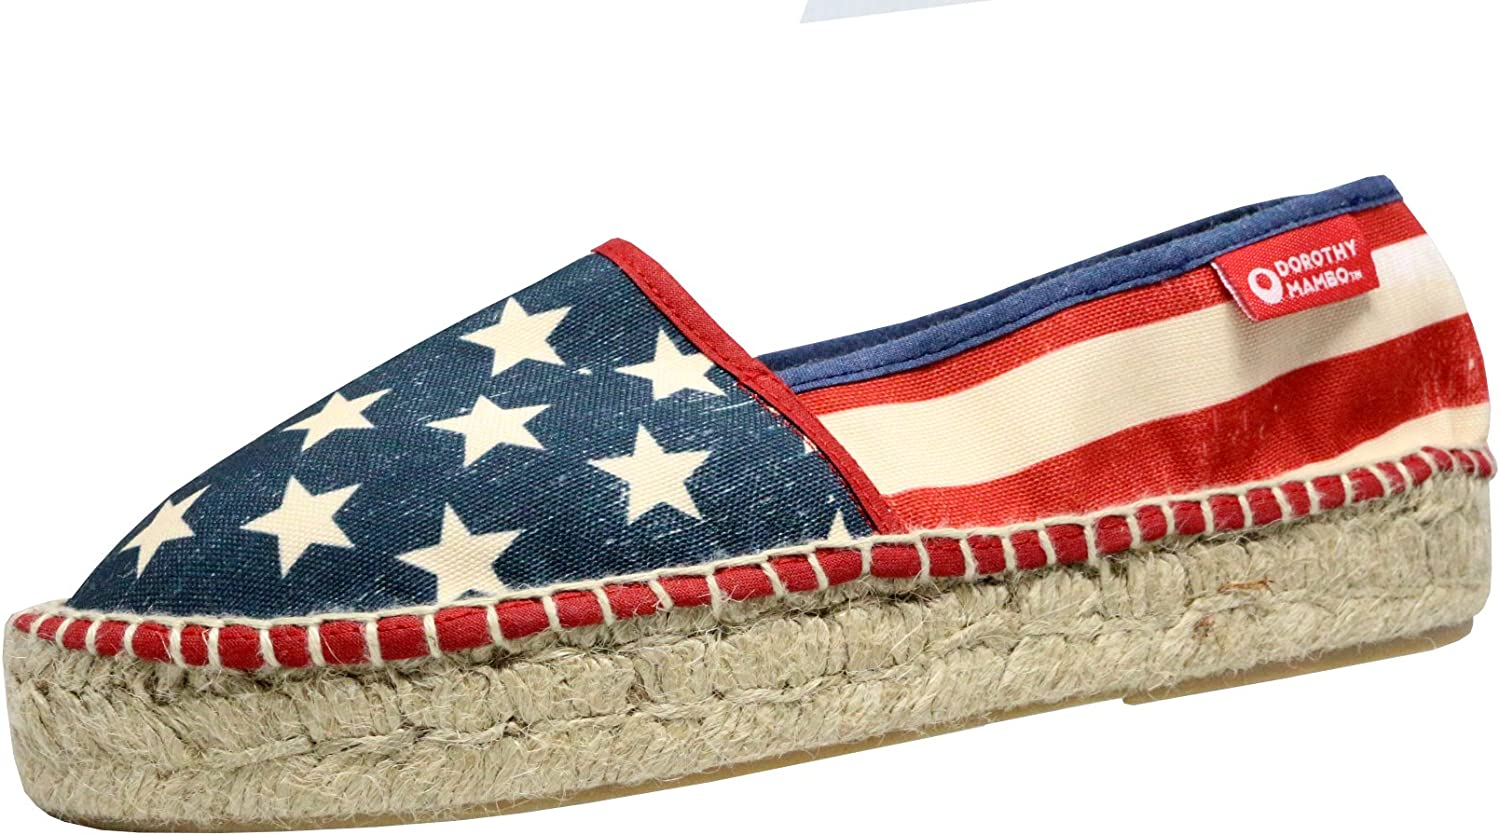 Dgoldthy Mambo x Fusion Kawaii Espadrille Slip-on Loafer Vintage US Flag Made in Spain bluee